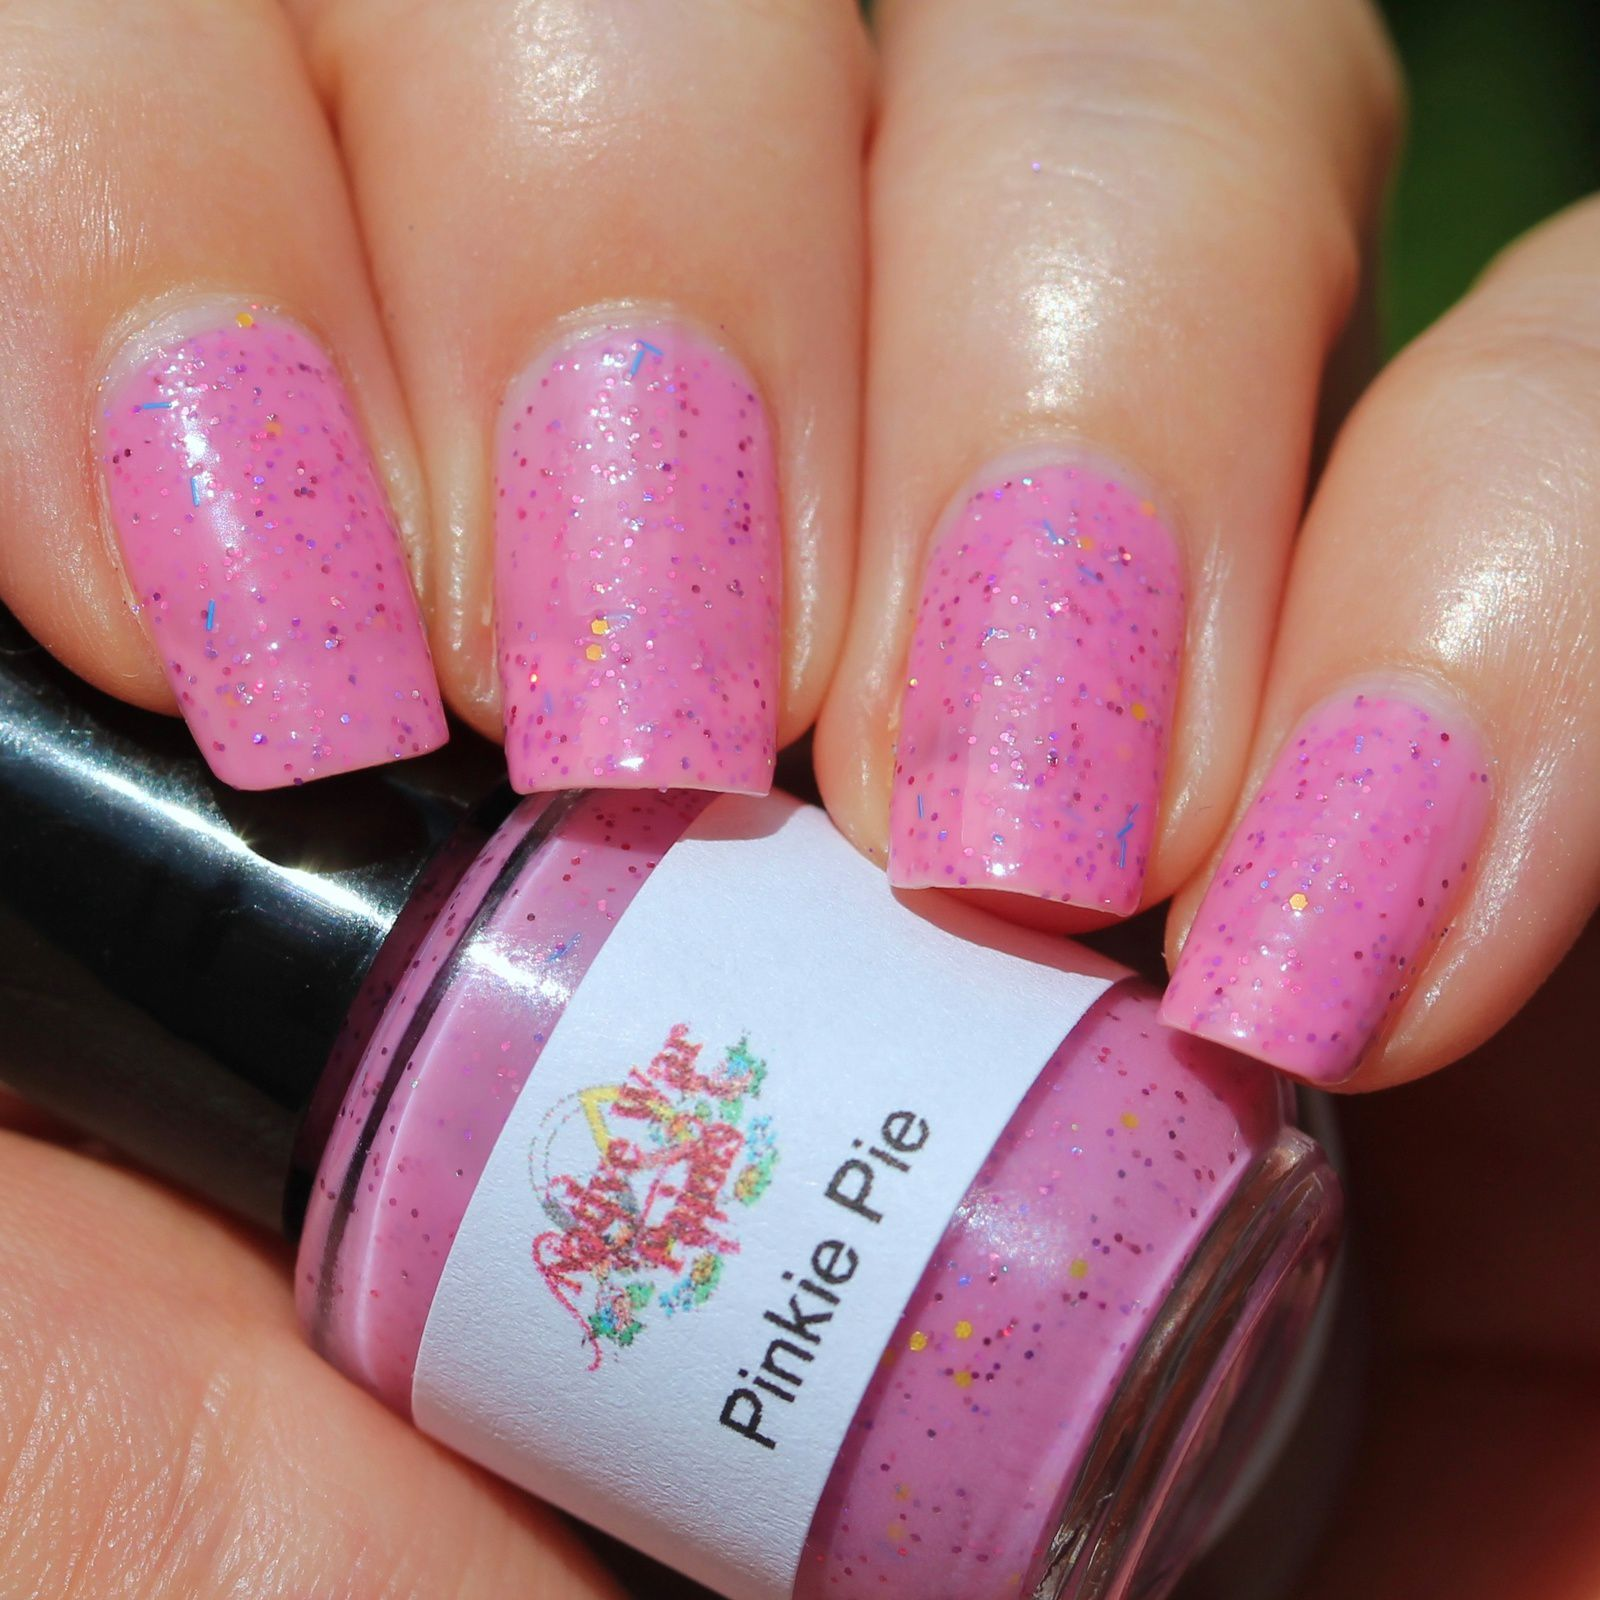 Native War Paints Pinkie Pie (3 coats, no top coat)